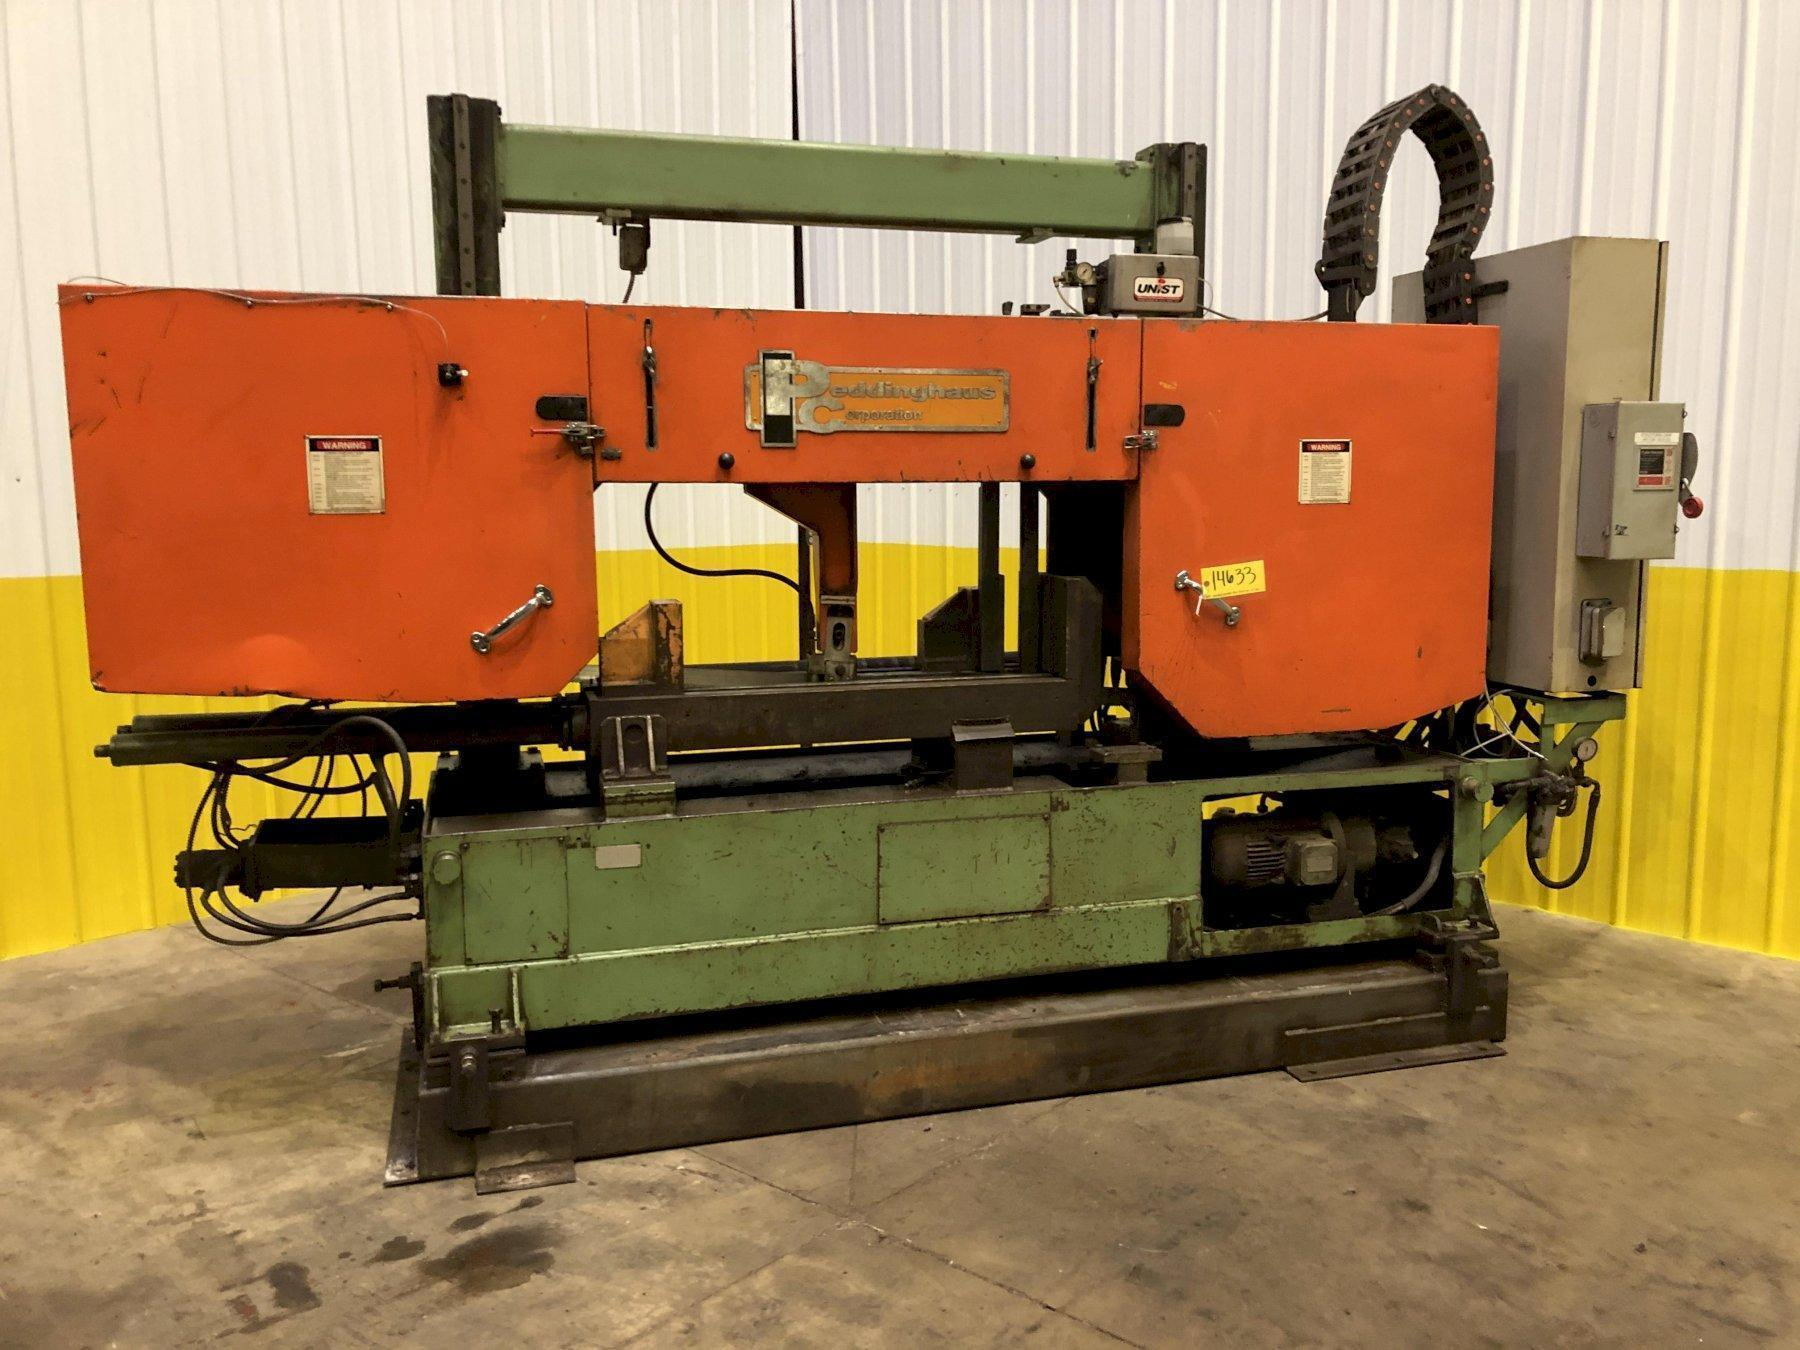 2003 CONTROLLED AUTOMATION MODEL #BFC-530 BEAM PUNCH LINE WITH PEDDINGHAUS SAW